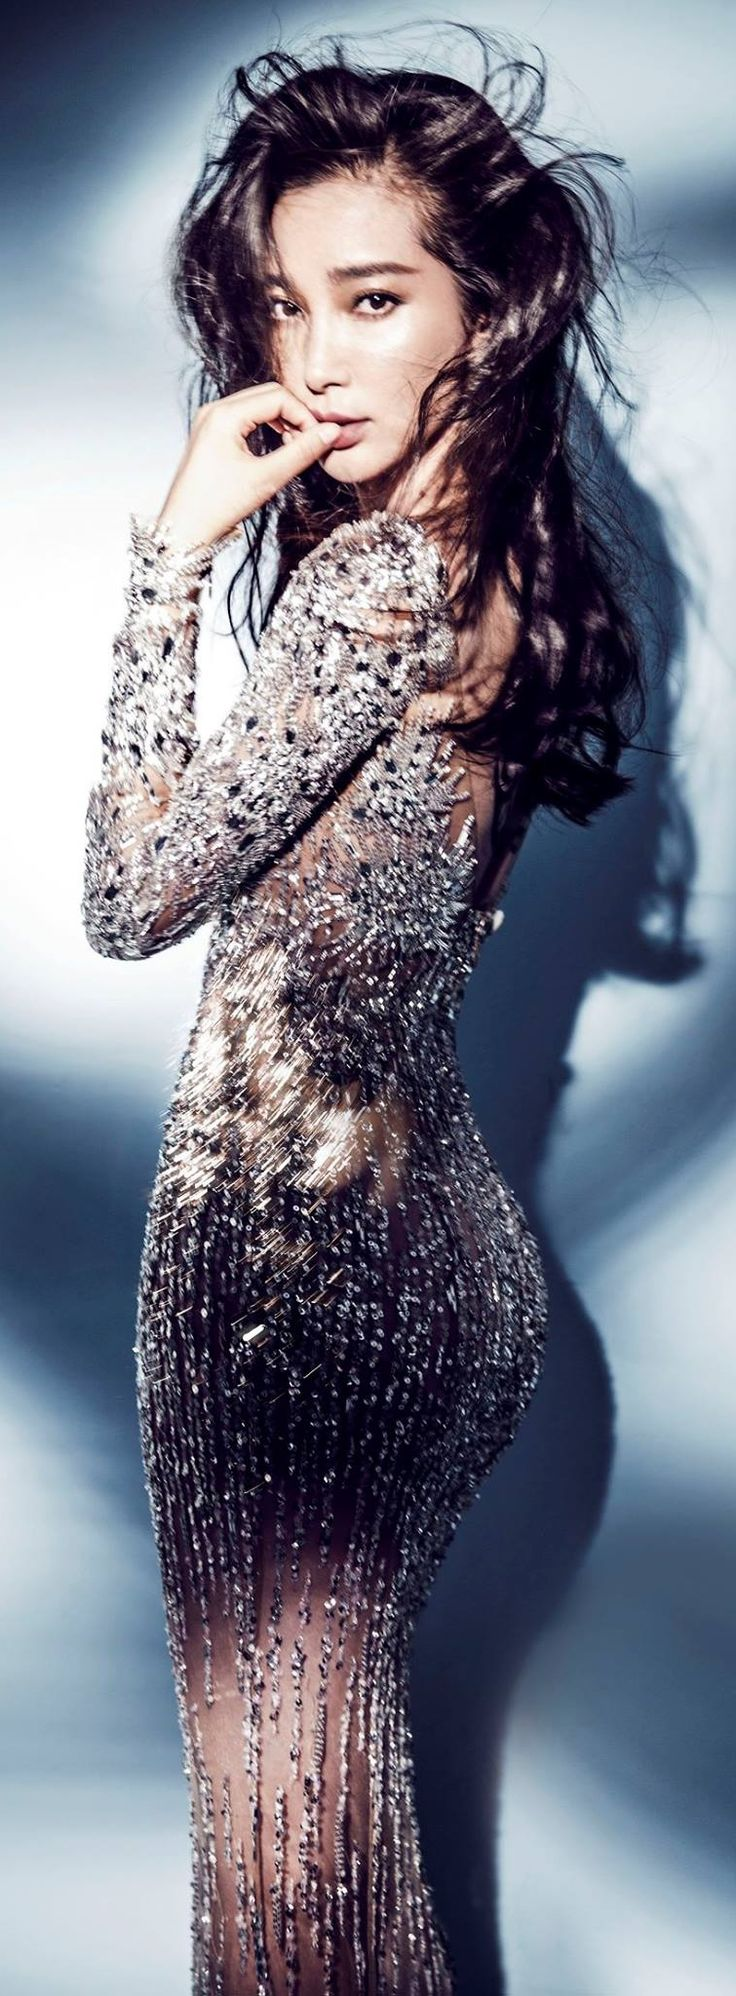 Li Bingbing in Zuhair Murad RTW Fall/Winter 2015-2016 for Marie Claire China July 2015